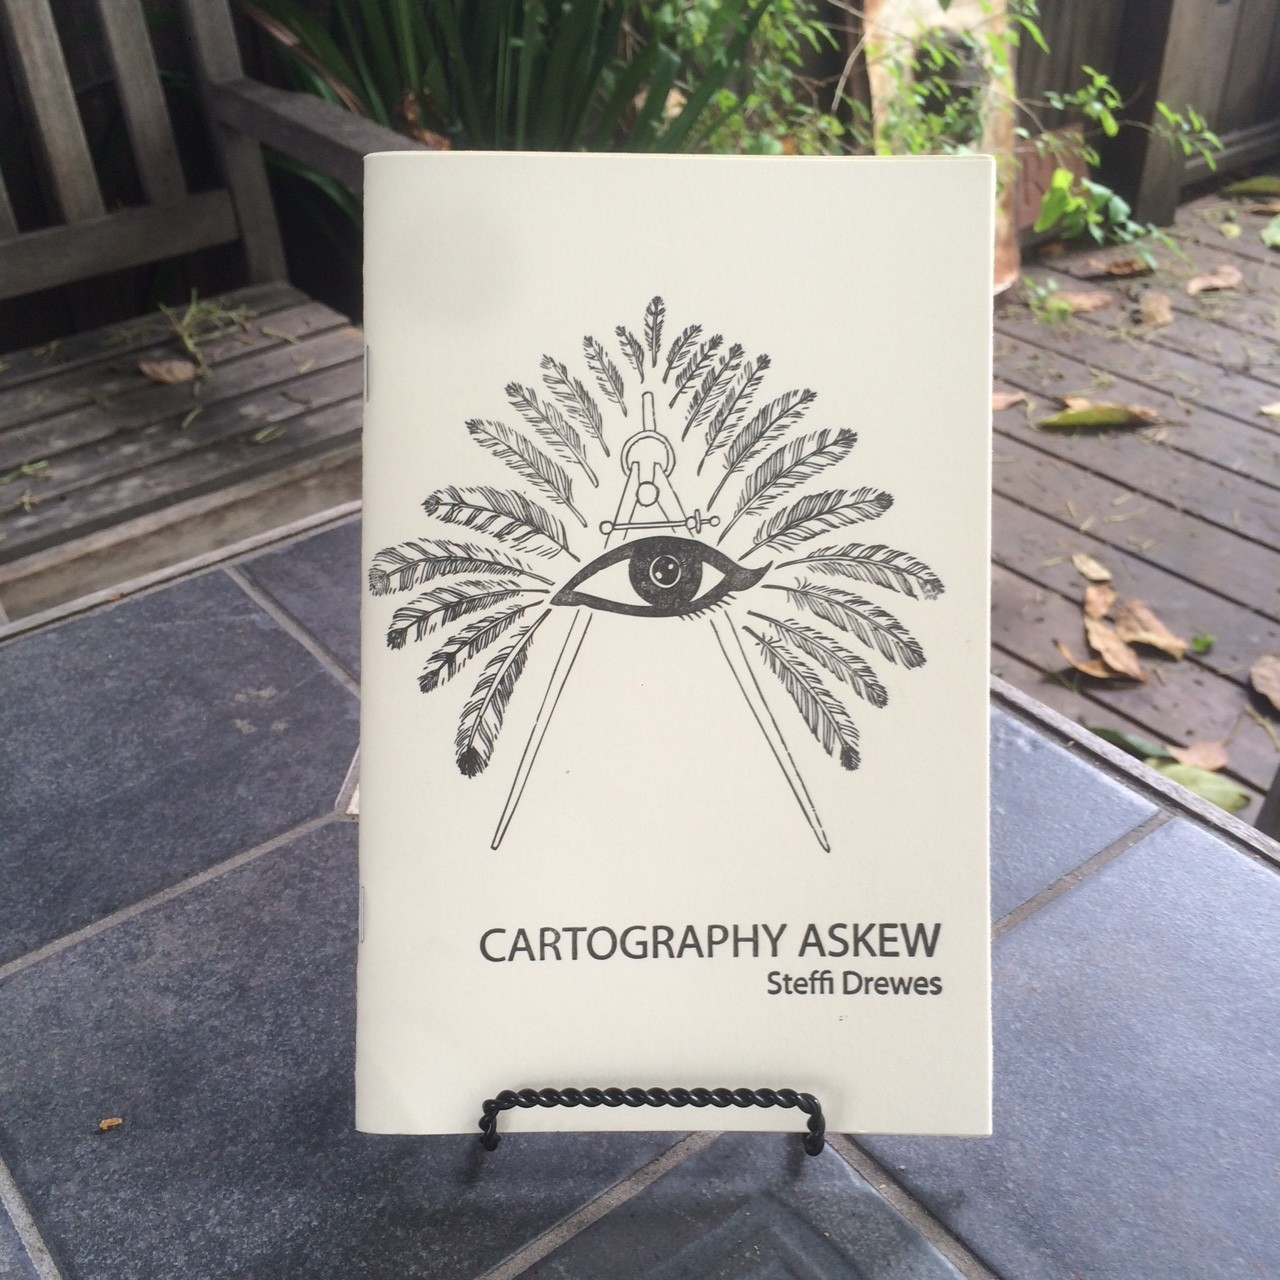 Cartography Askew, by Steffi Drewes